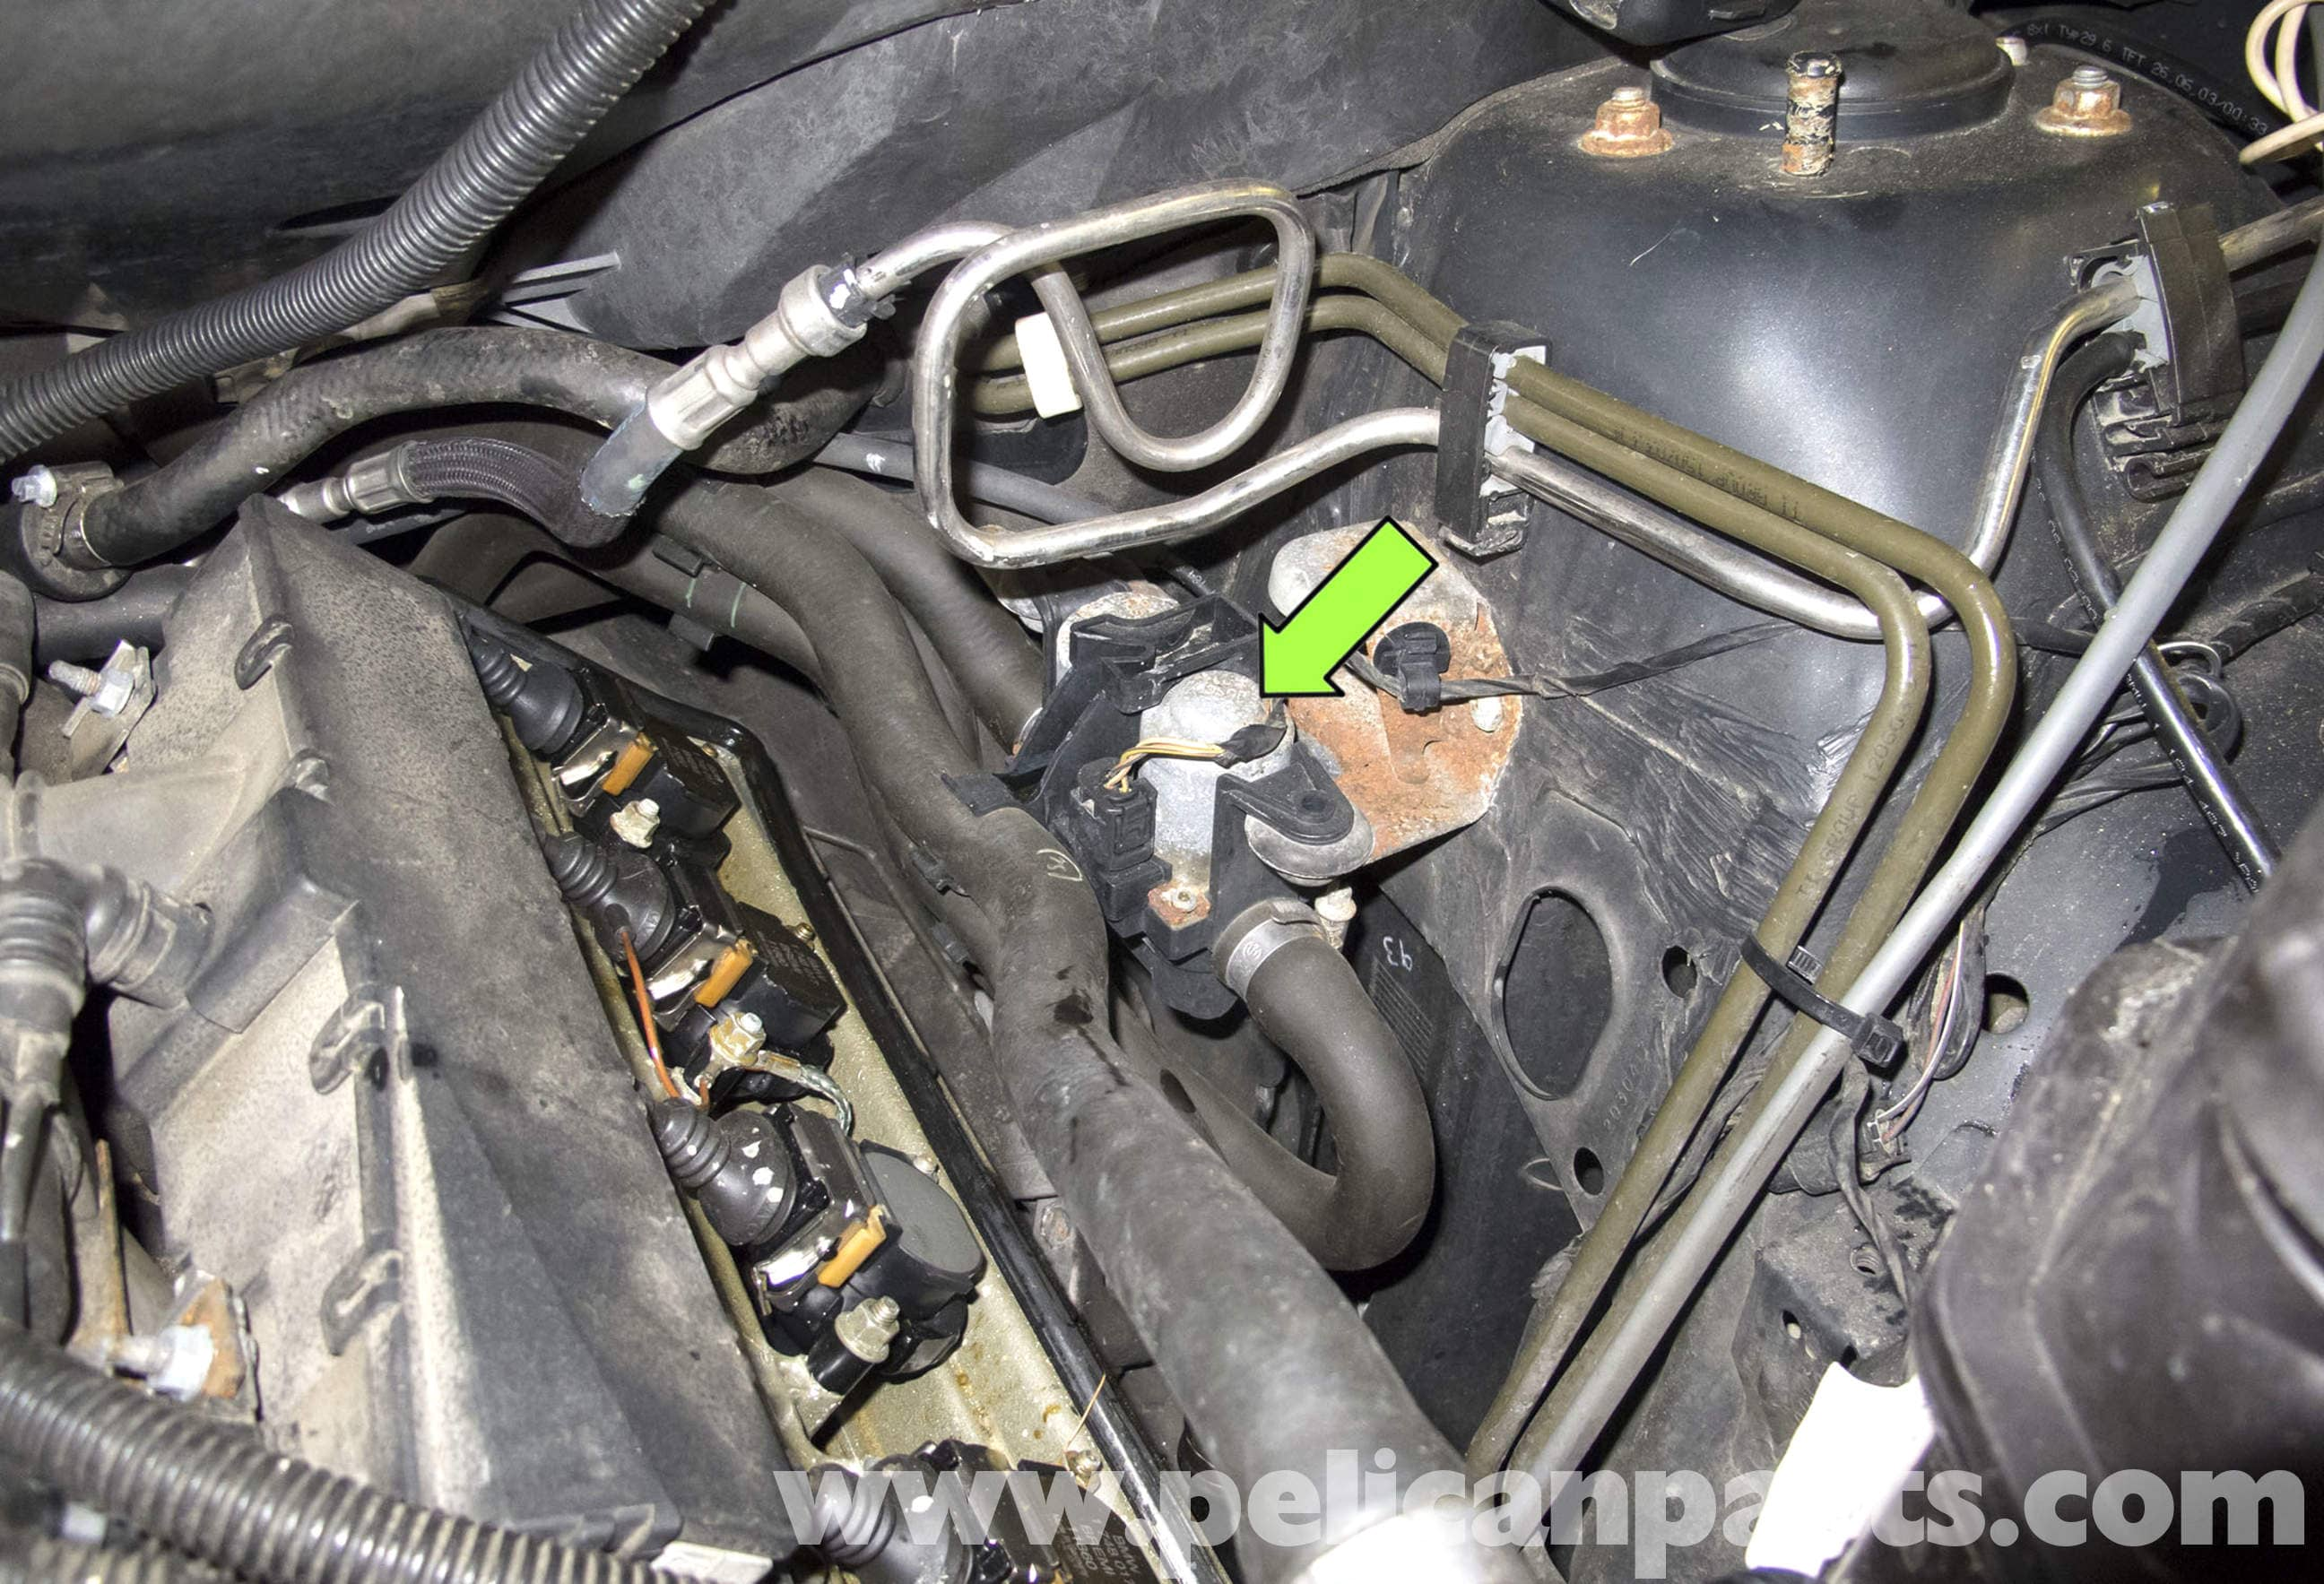 2004 Pontiac Grand Am Fuse Box Diagram Have A Bmw X5 Heater Valve Testing And Replacement E53 2000